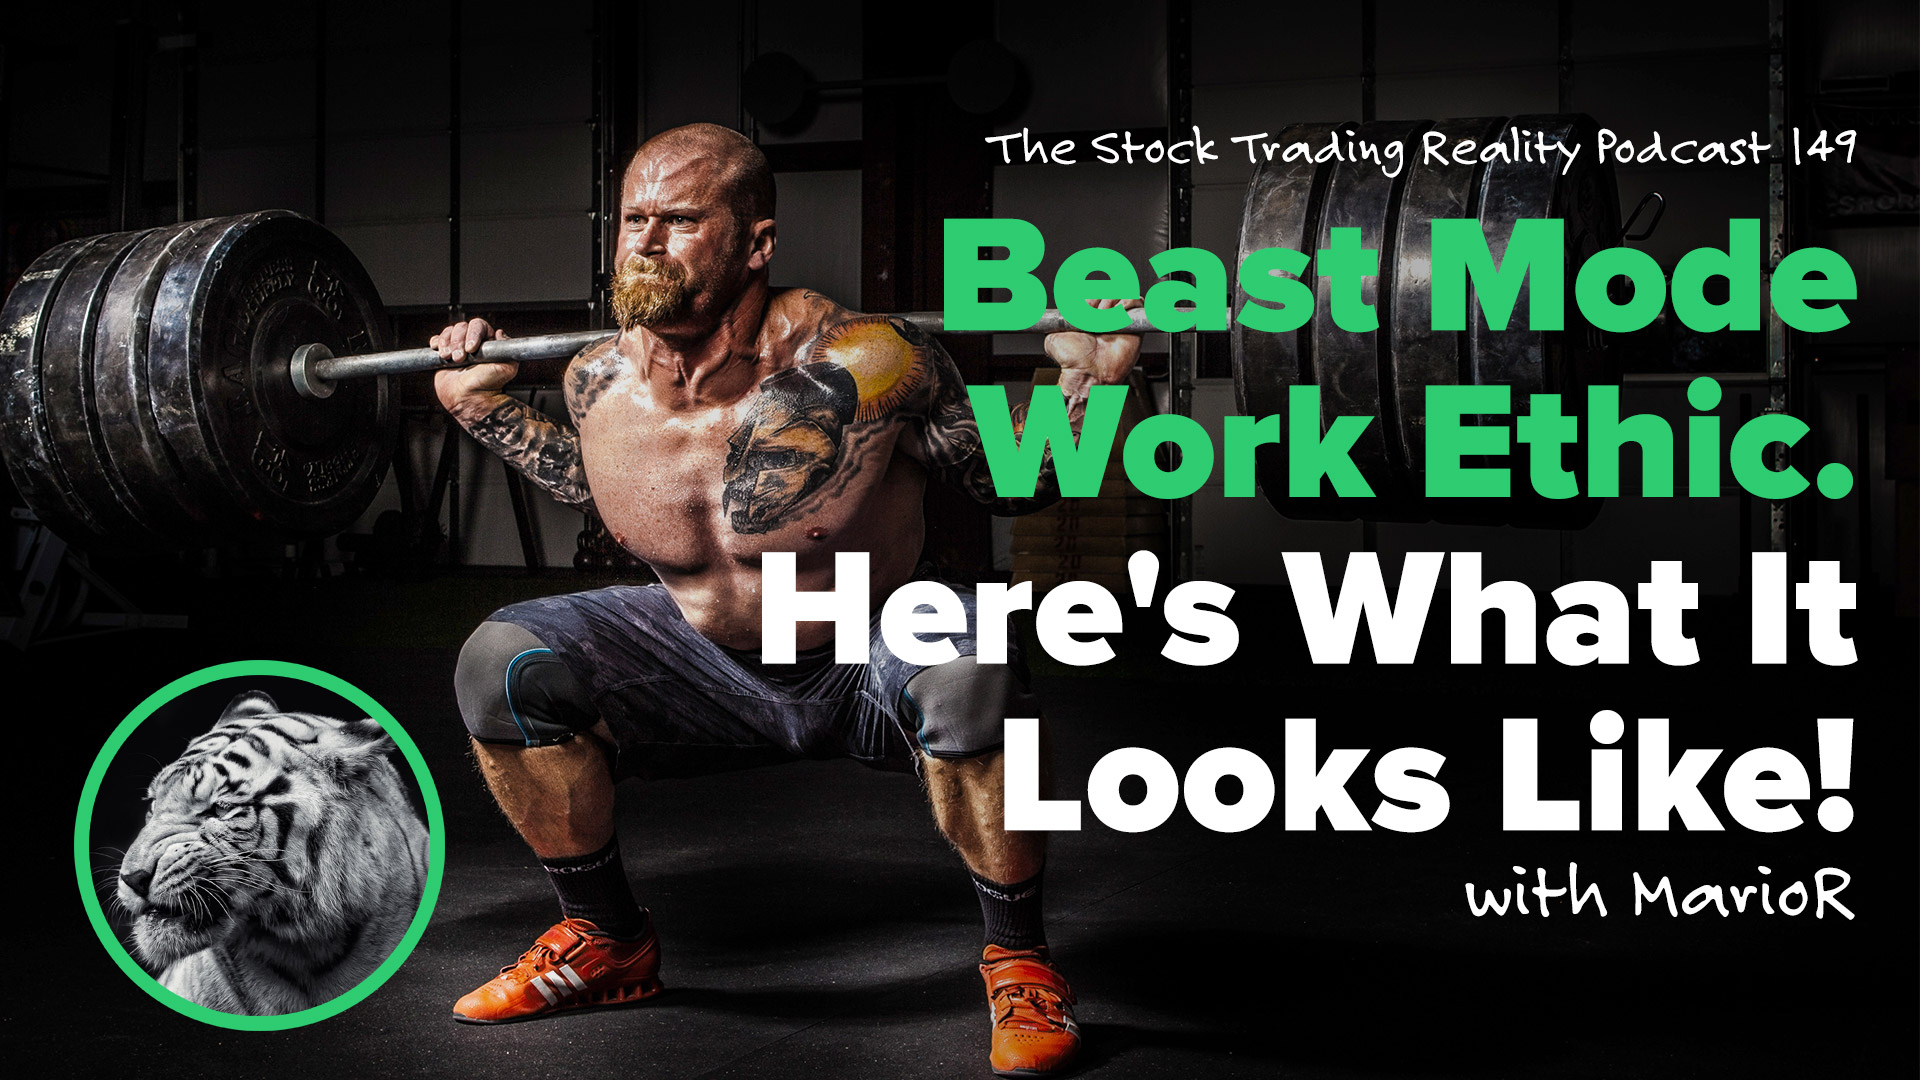 STR 149: Beast Mode Work Ethic. Here's What It Looks Like!